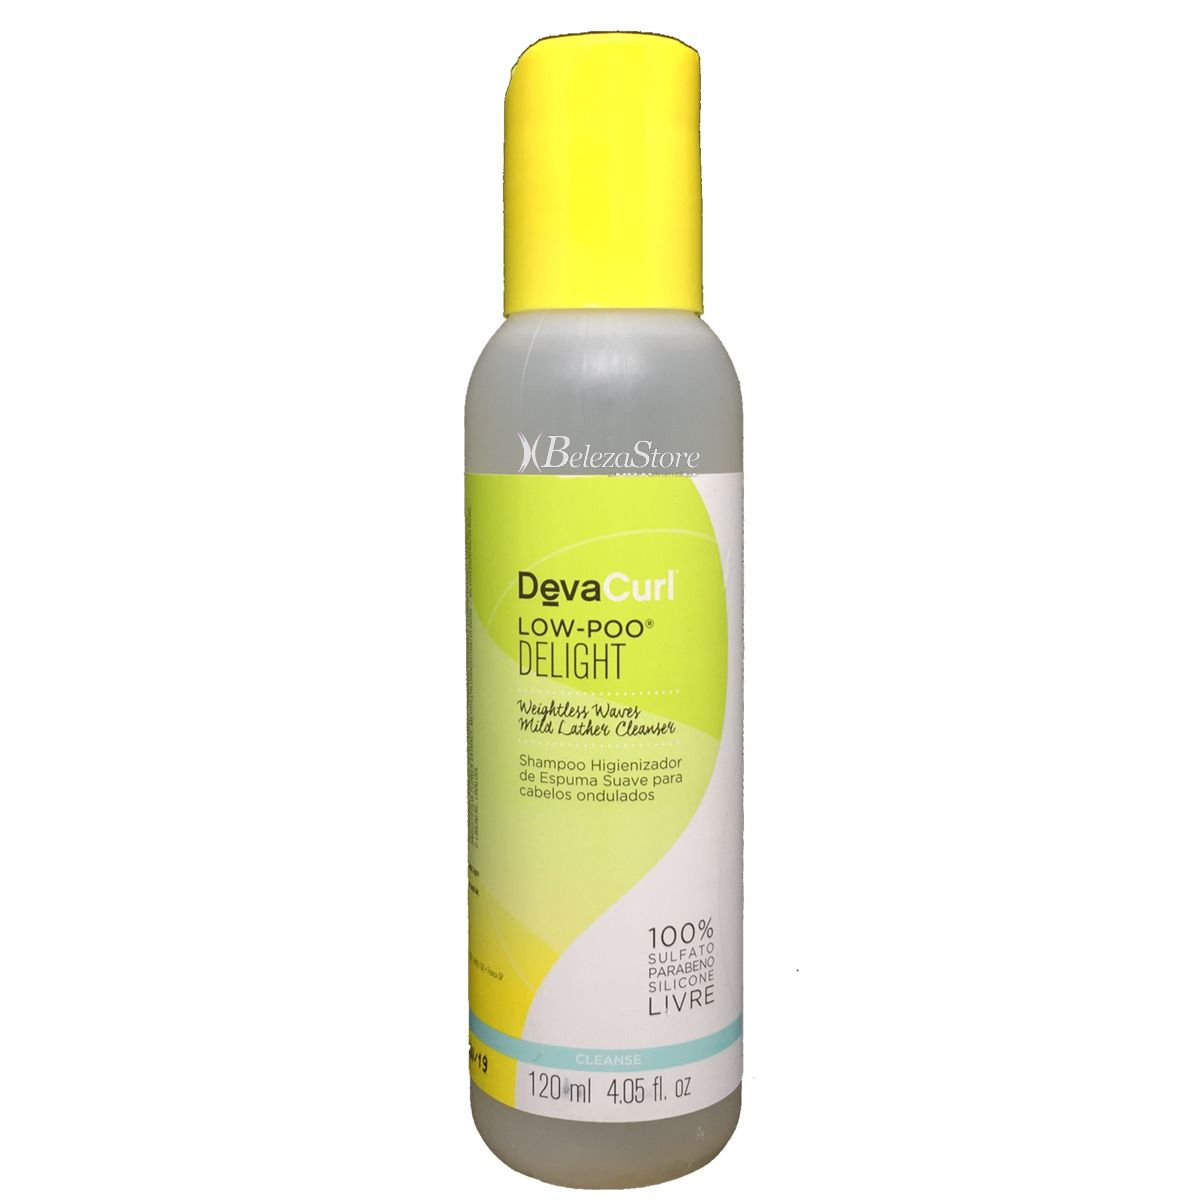 Deva Curl Low-Poo Delight 120 ml